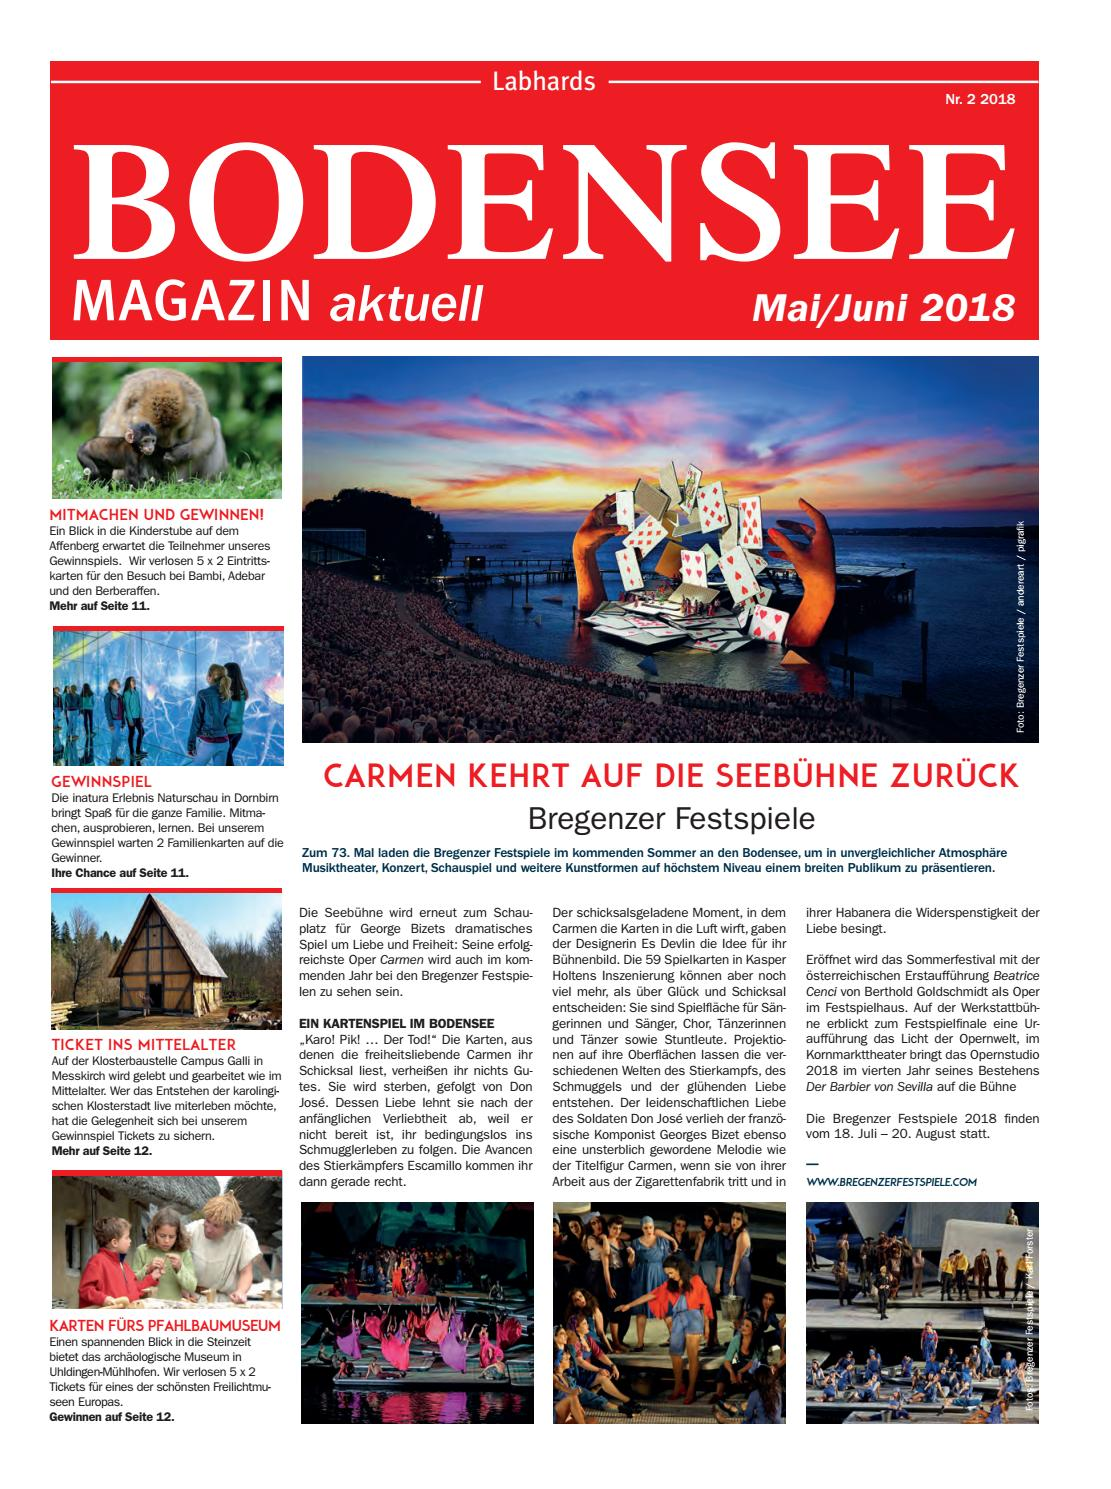 15766d62fb7383 Bodensee Magazin aktuell 2 2018 by Labhard Medien - issuu